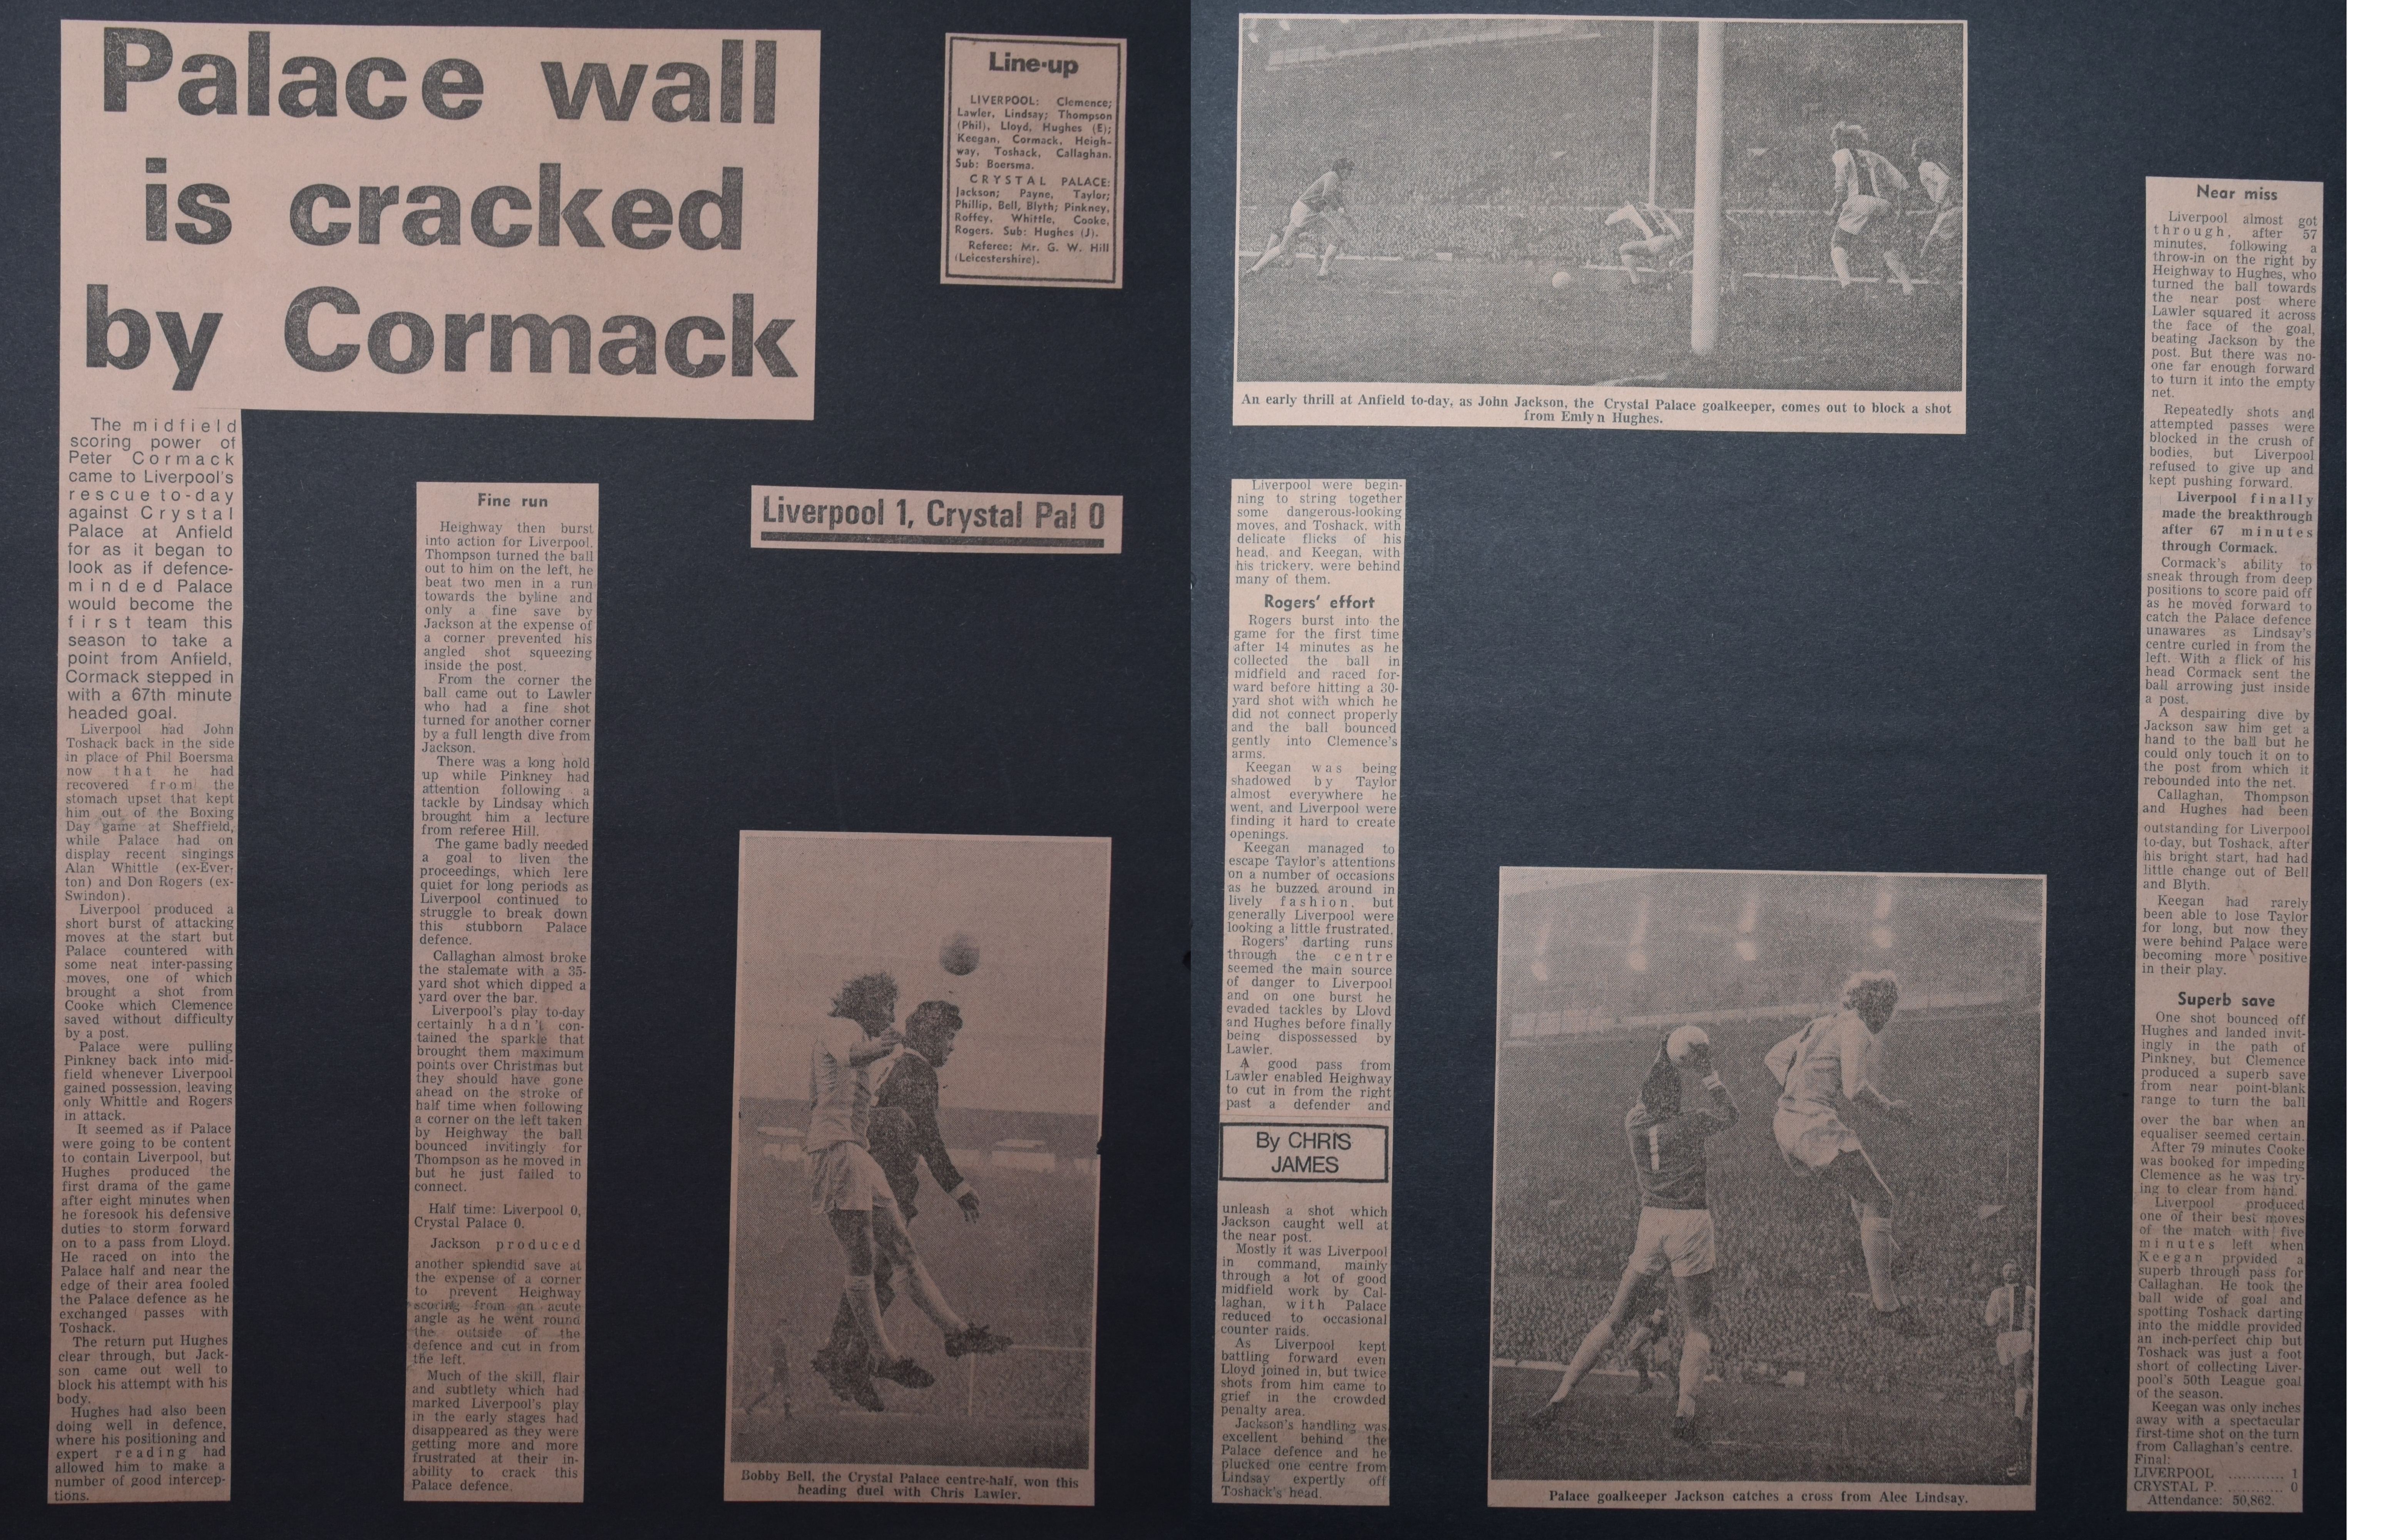 Palace wall is cracked by Cormack! - 30 December 1972